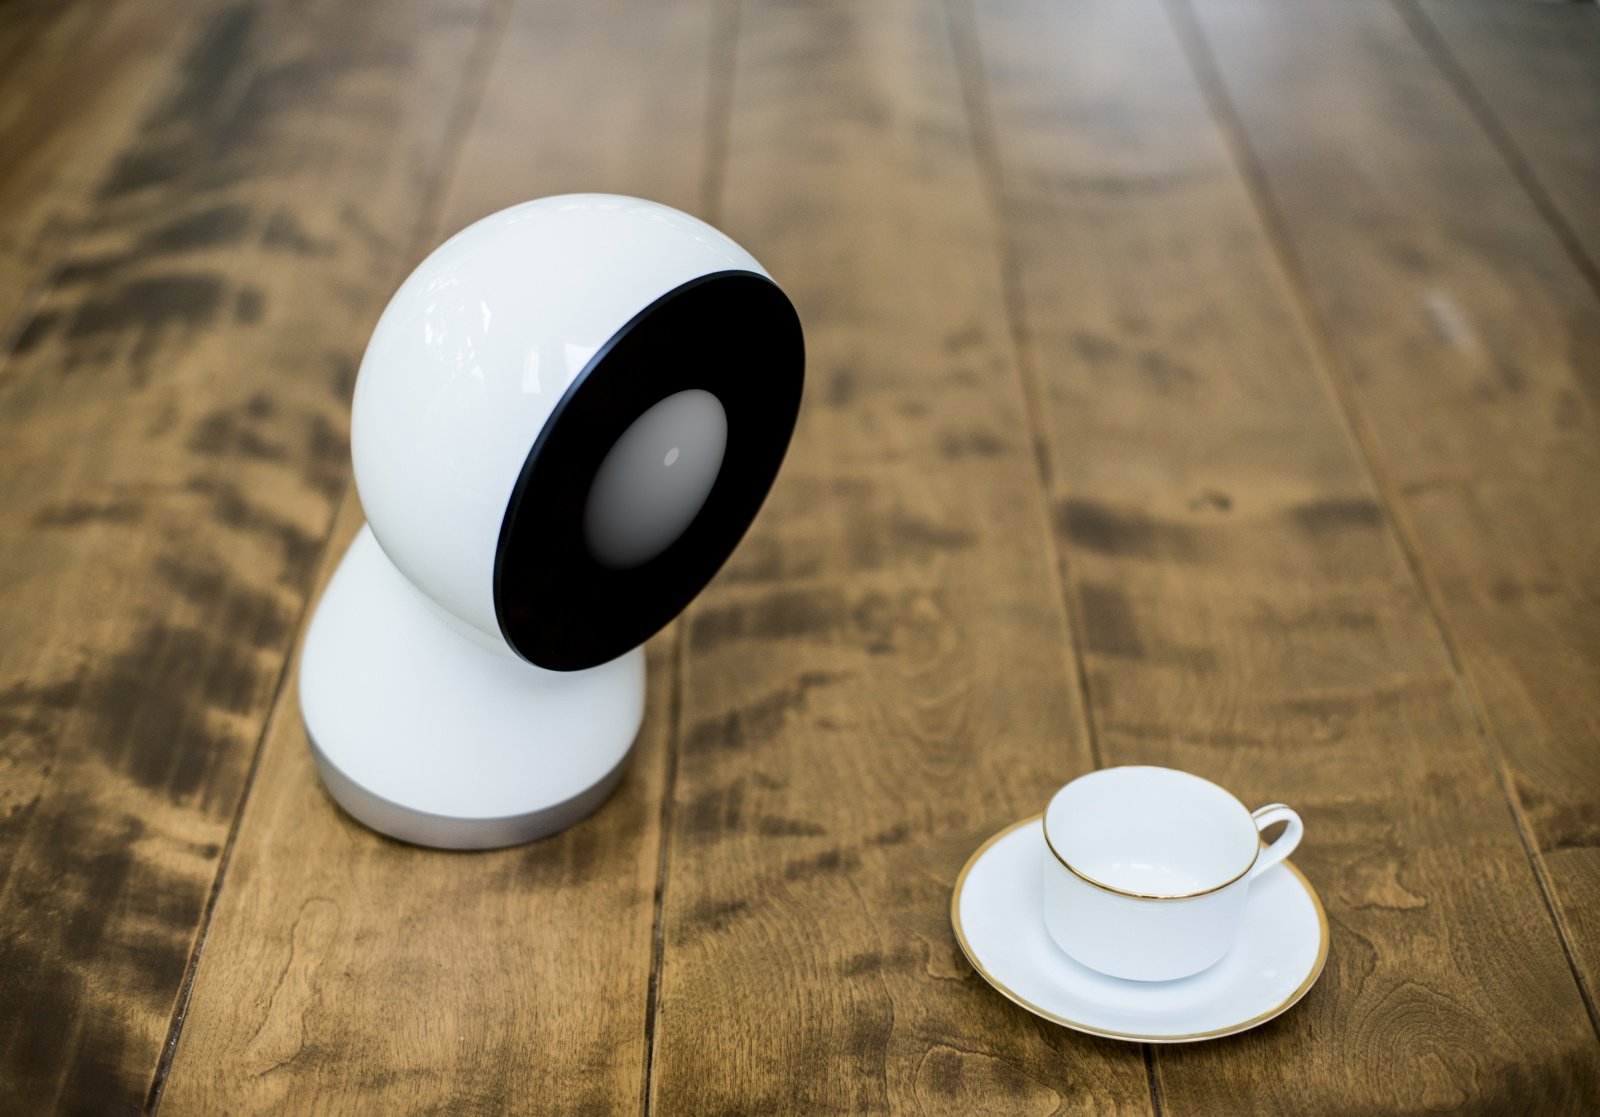 jibo-cup-empty-looking-1600x1117